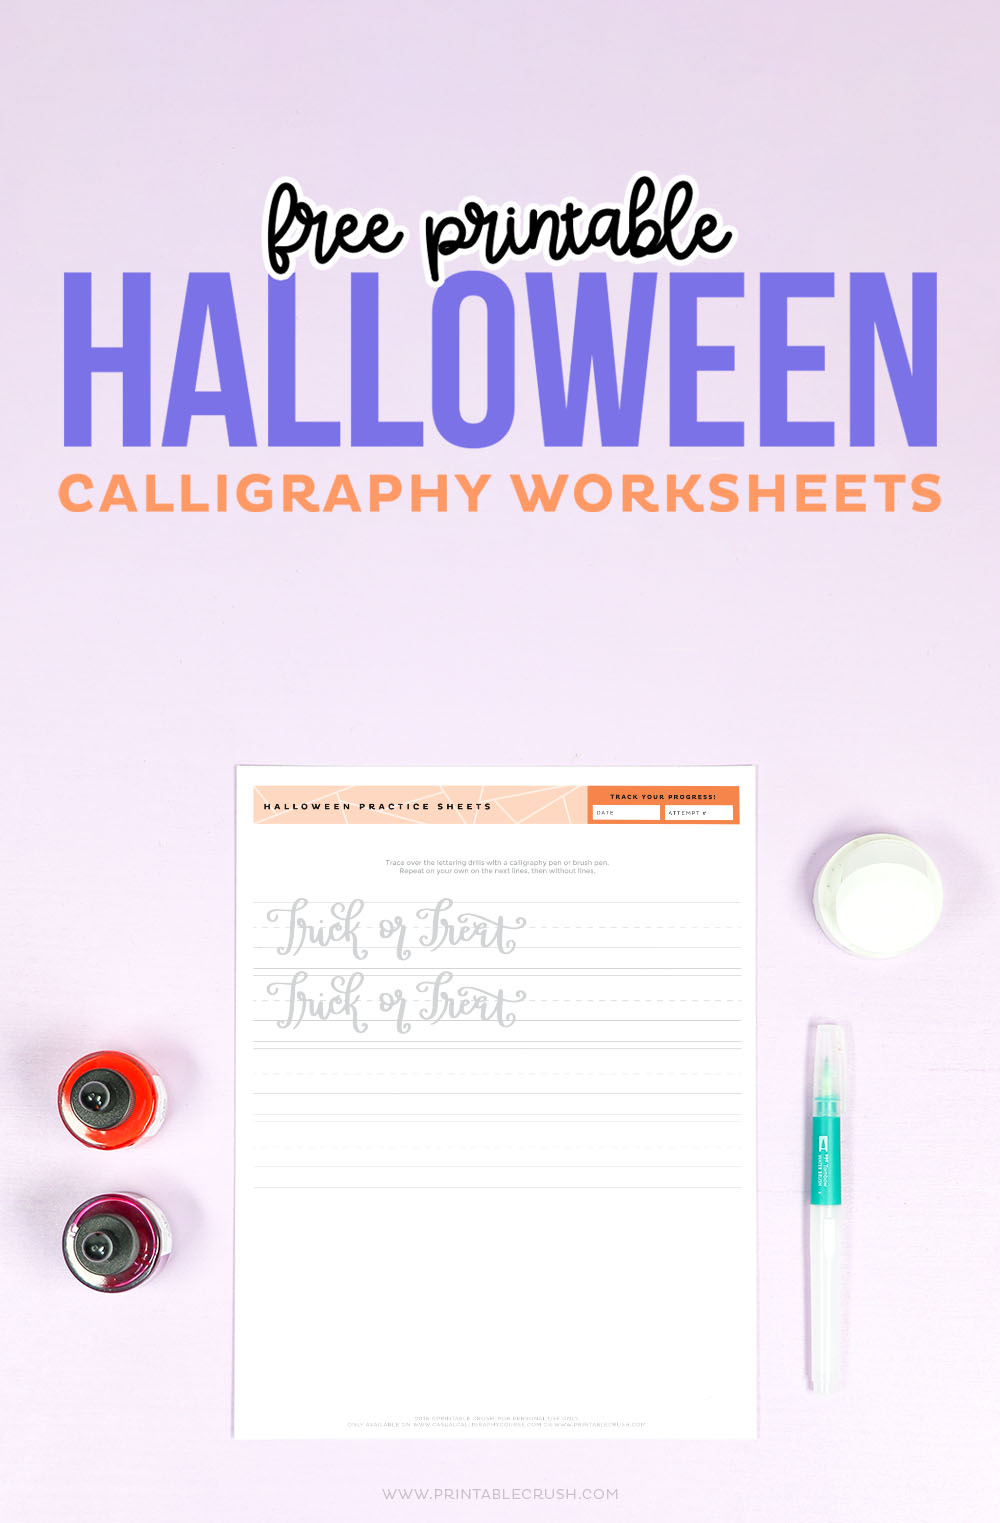 Halloween Calligraphy Worksheets